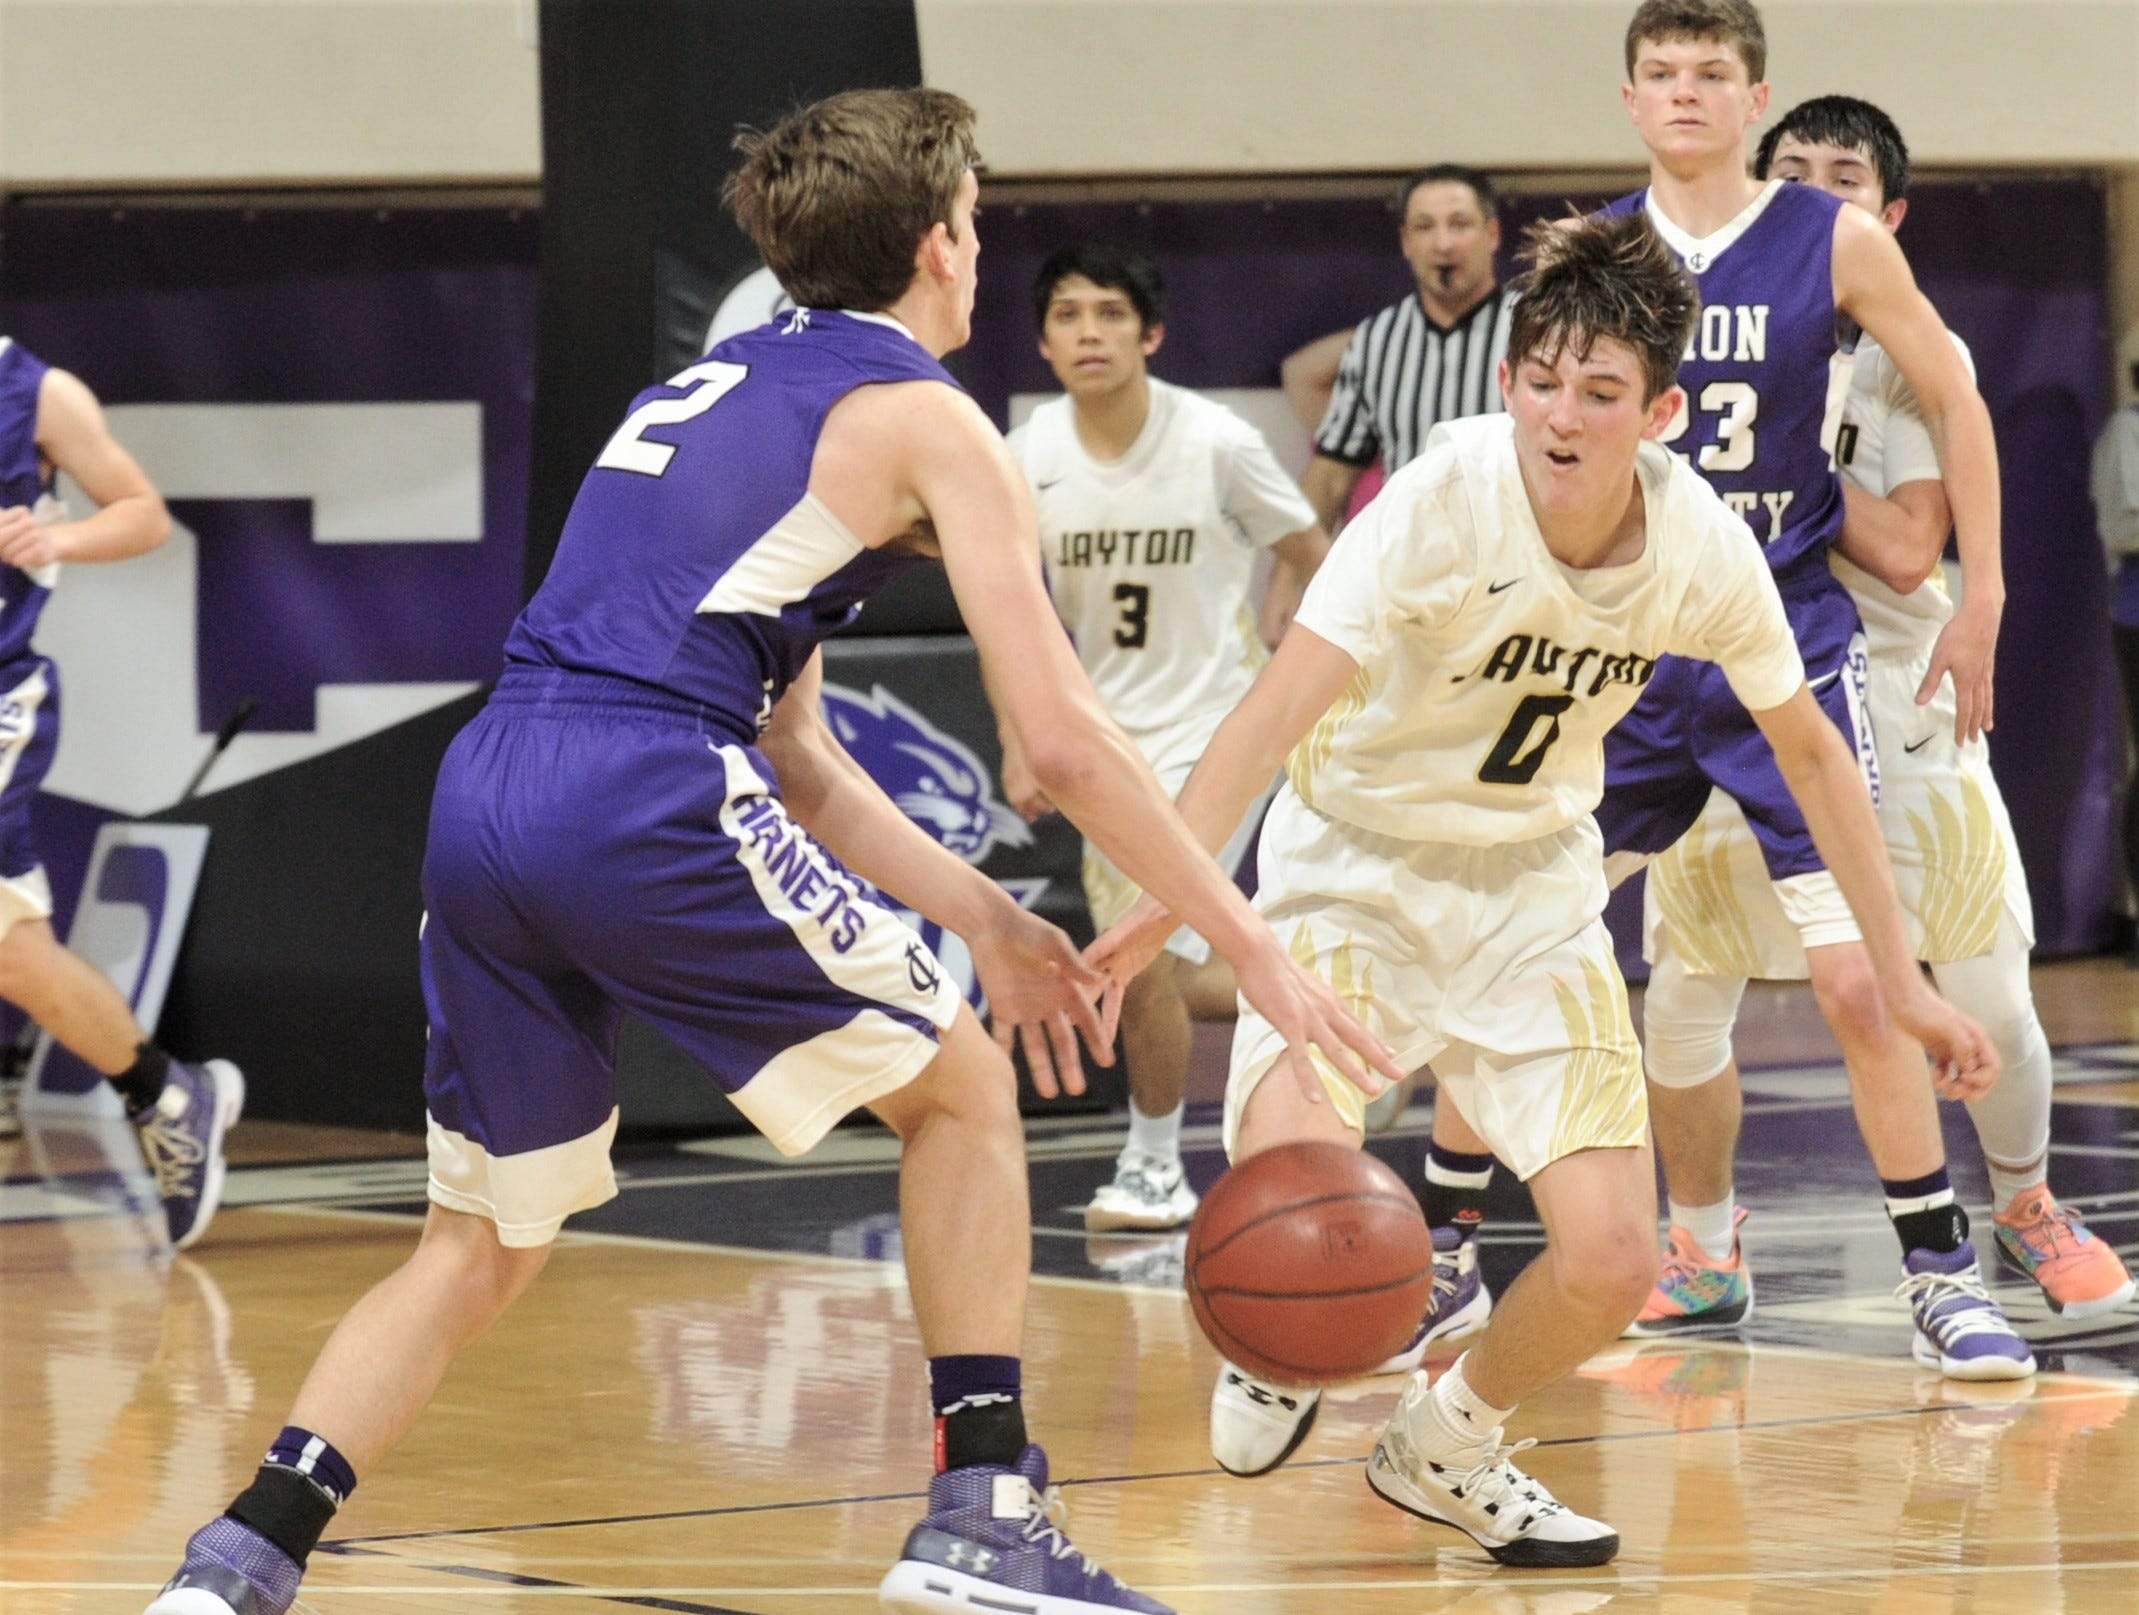 Jayton's Tripp Scott (0) tries to knock the ball away from Irion County's Kaden Councilman. The Jaybirds beat Irion County 47-32 in the Region II-1A championship game Saturday, March 2, 2019, at Abilene Christian's Moody Coliseum.